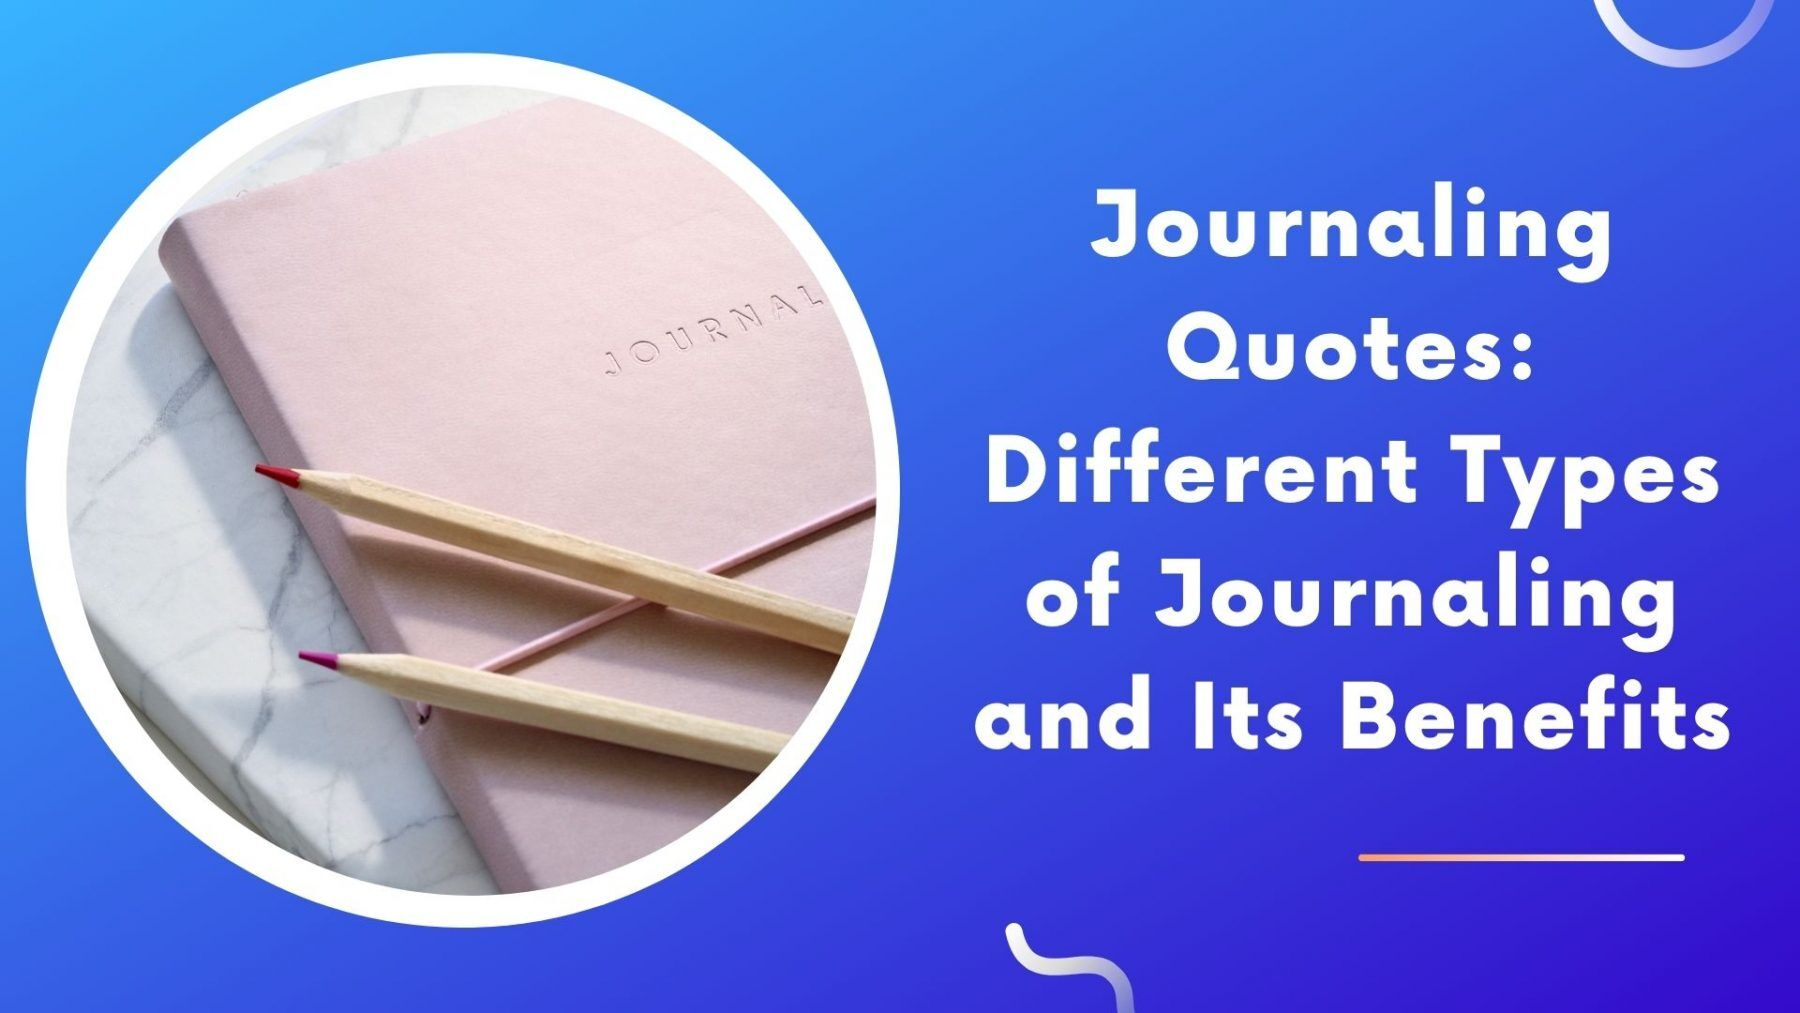 Journaling Quotes Different Types of Journaling and Its Benefits